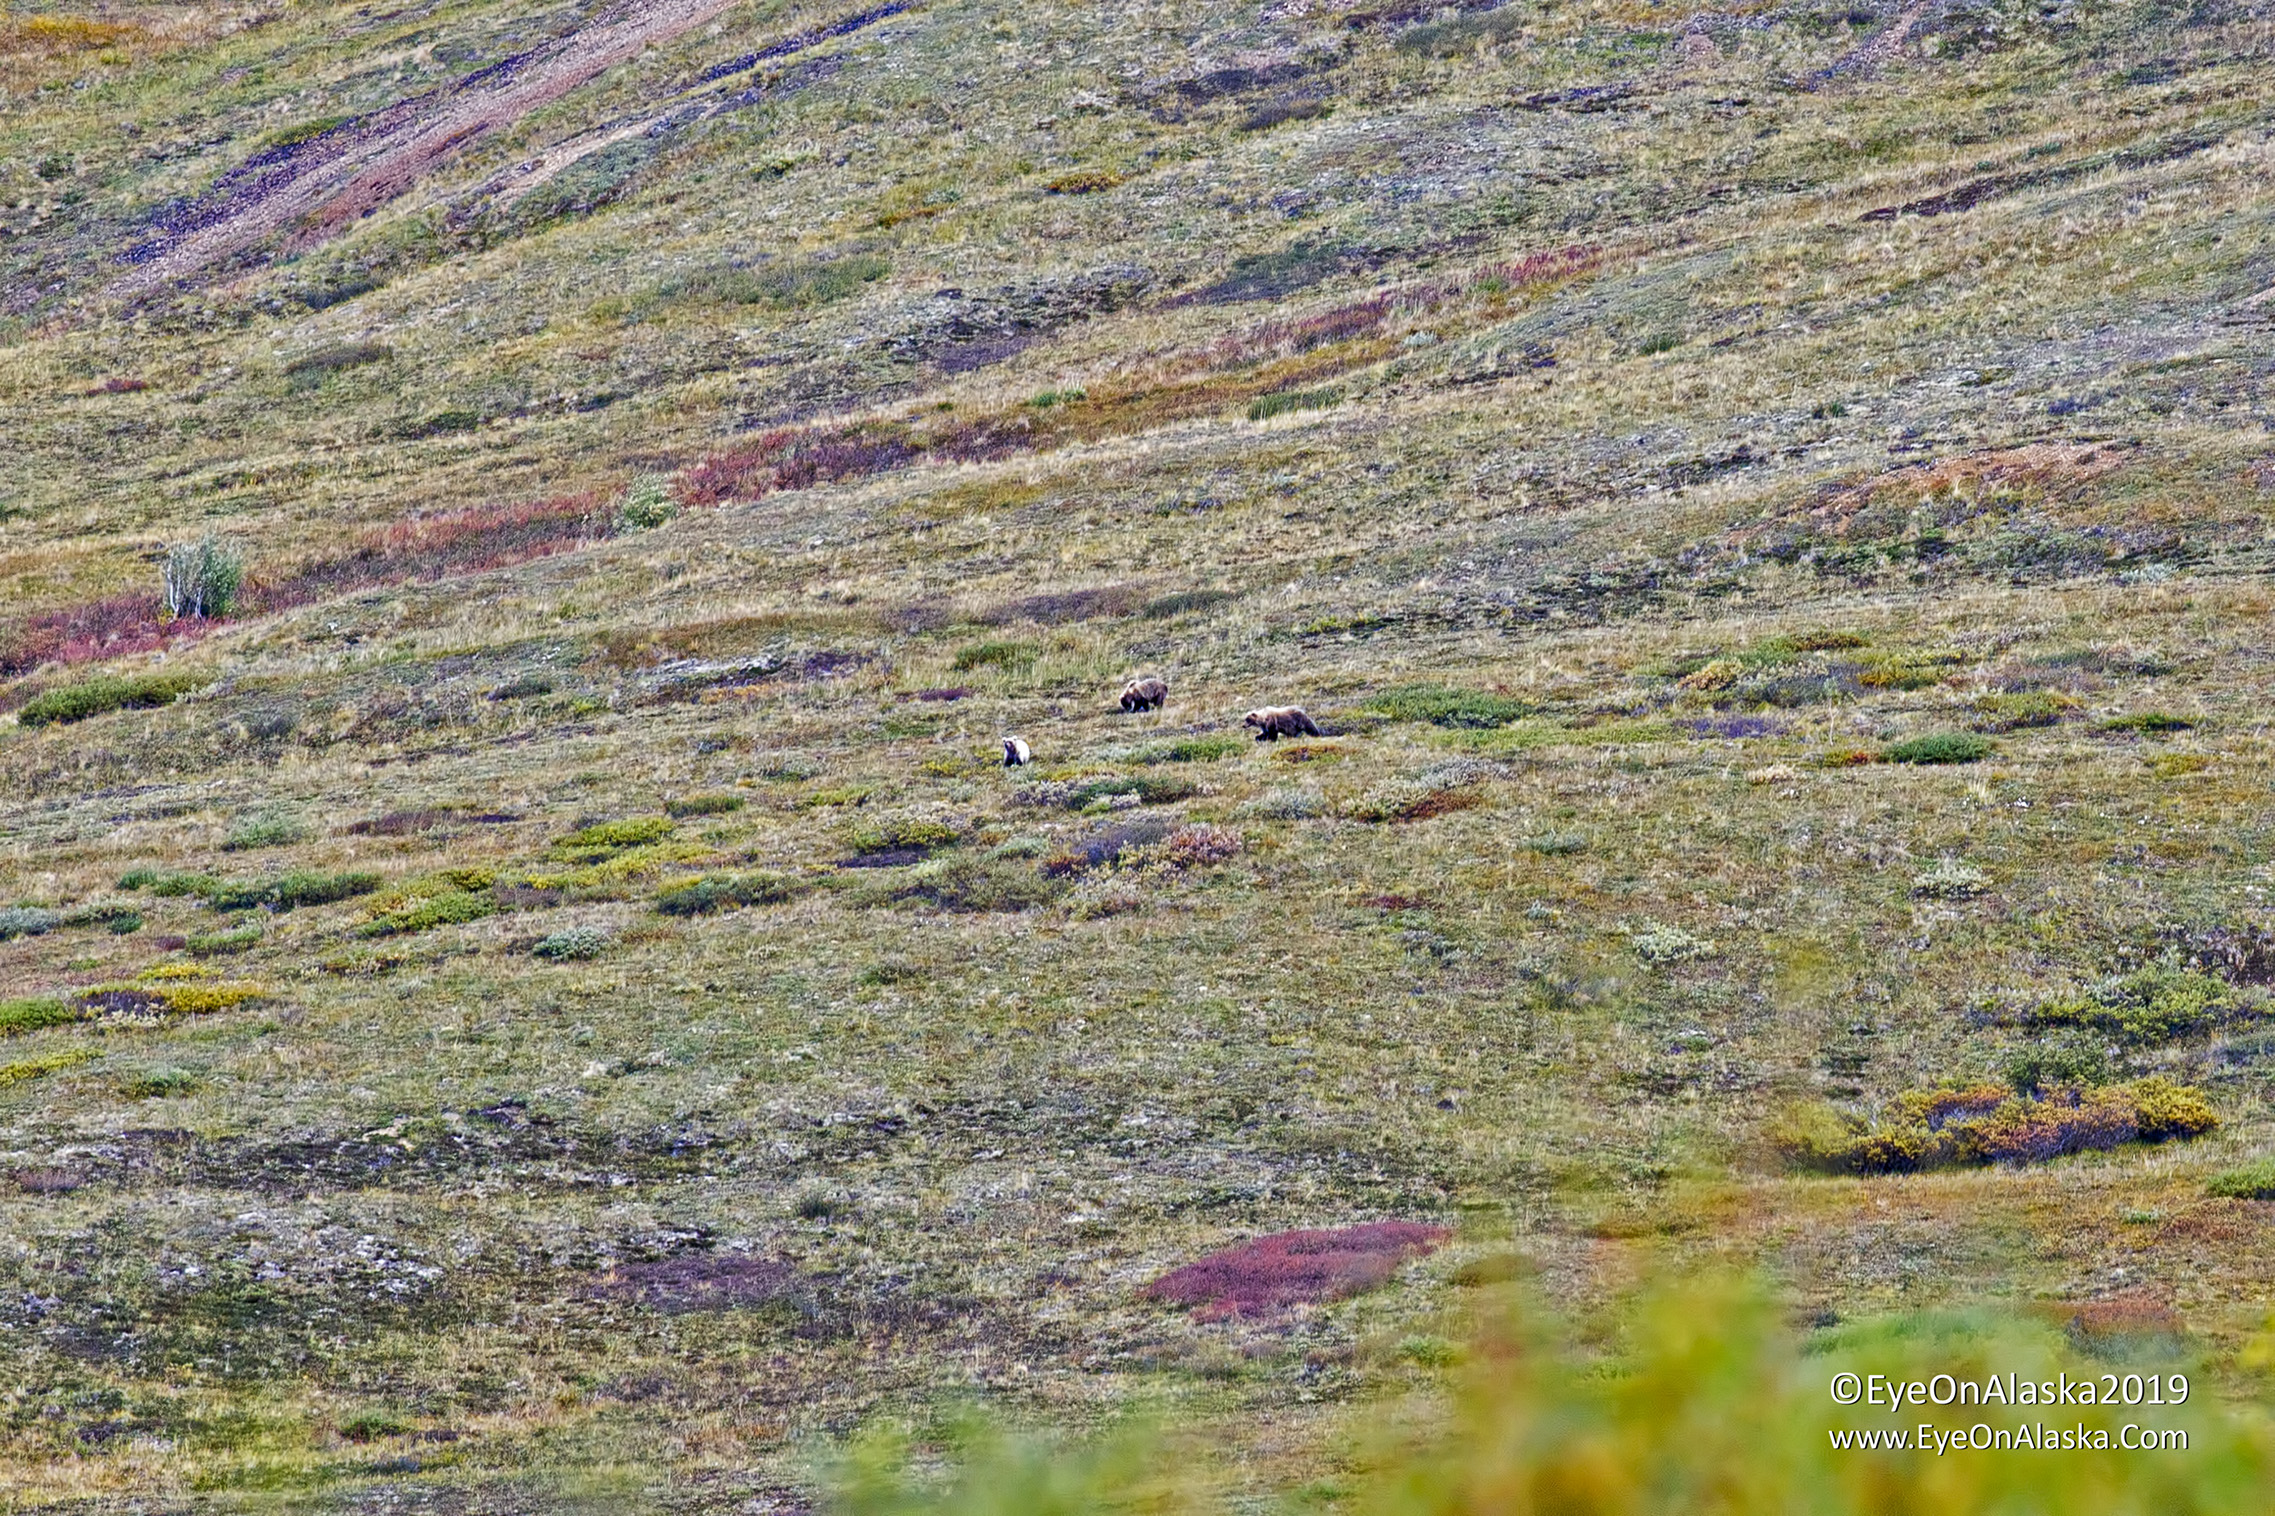 Back on the bikes heading down Sable Pass again, and not more than a half mile after we start we spot these 3 bears up in the berry fields.